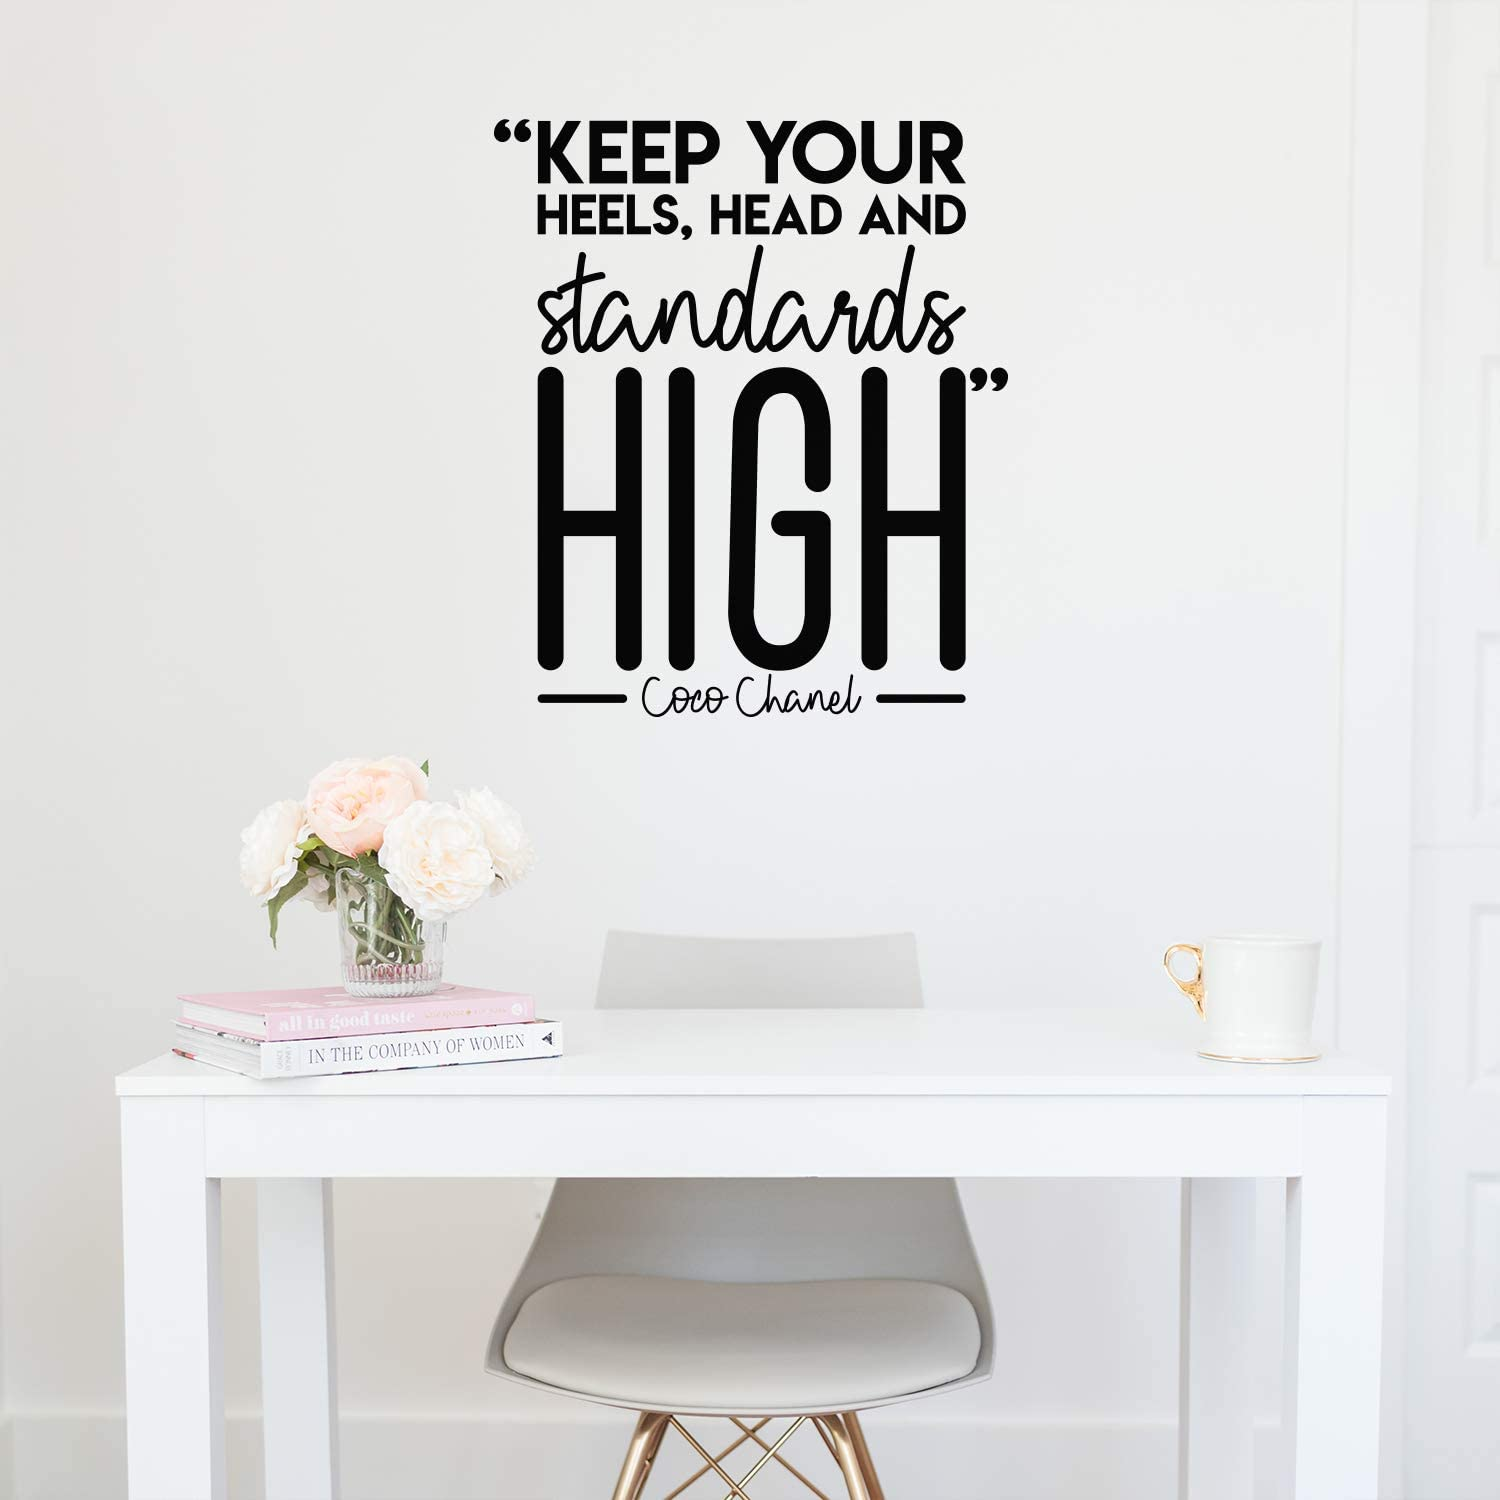 Vinyl Wall Art Decal - Keep Your Heels, Head And Standards High - 26